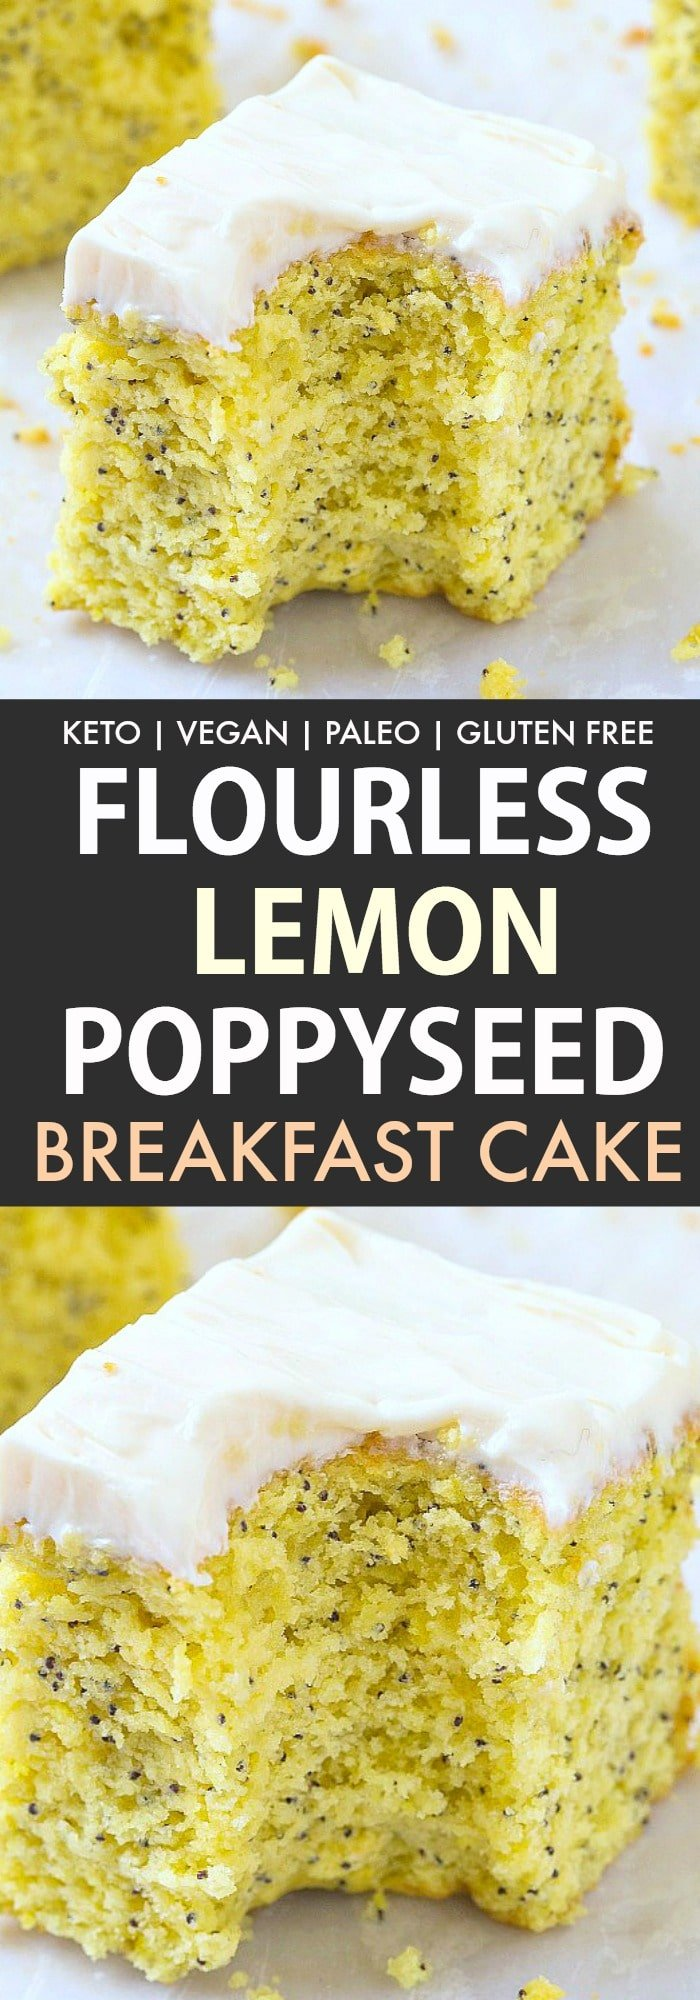 healthy flourless keto lemon poppy seed breakfast cake topped with a dairy free cream cheese frosting